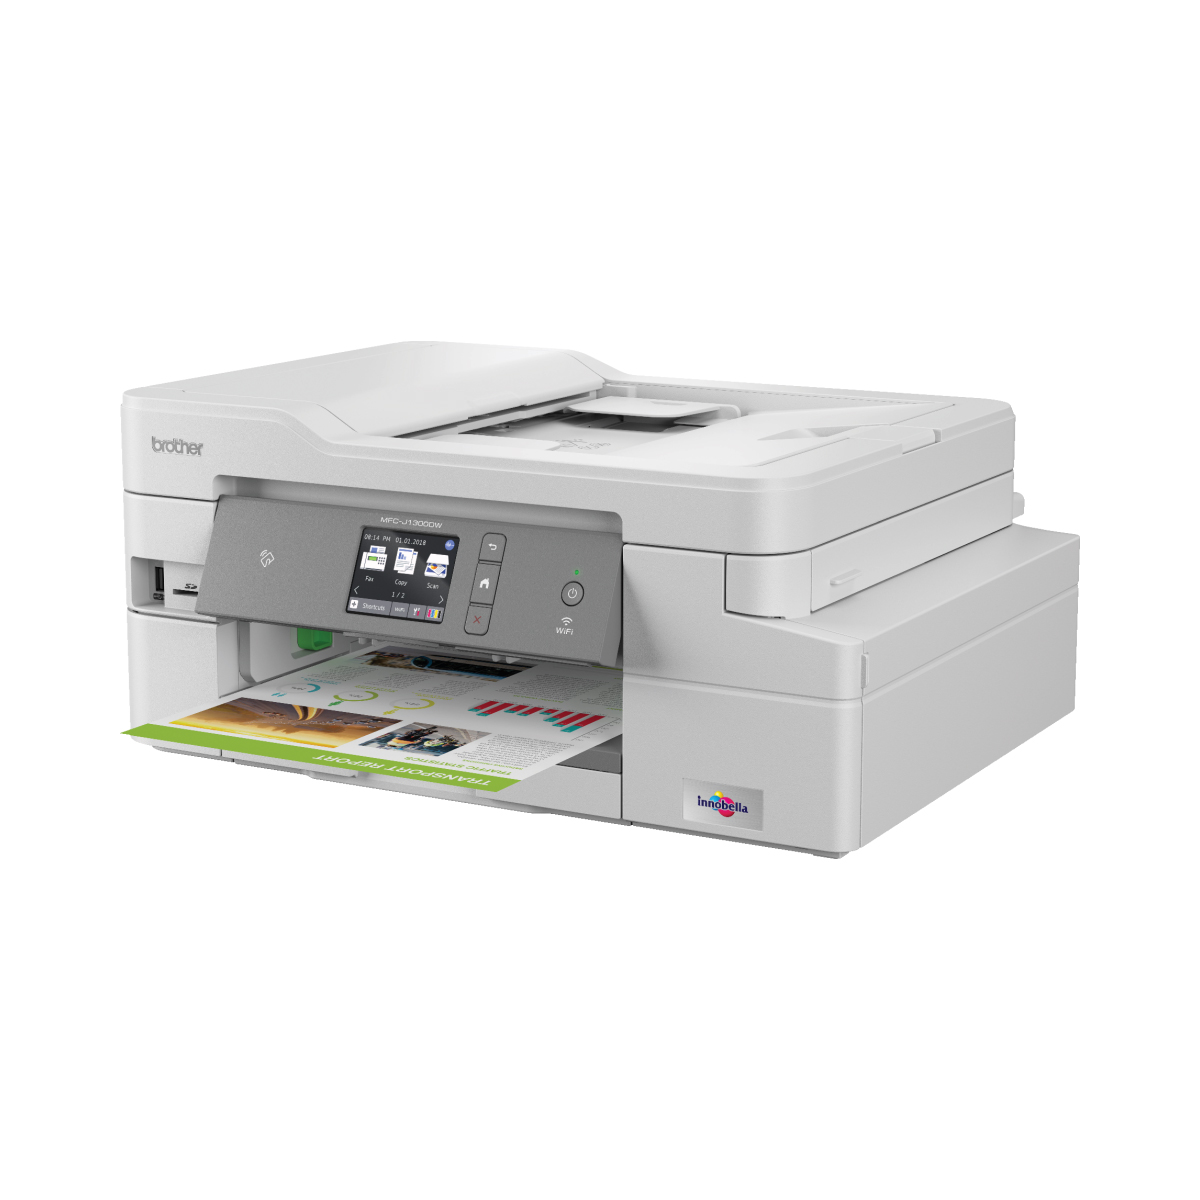 Brother MFCJ1300DW All-in-Box Inkjet Printer Ref MFCJ1300DWZU1